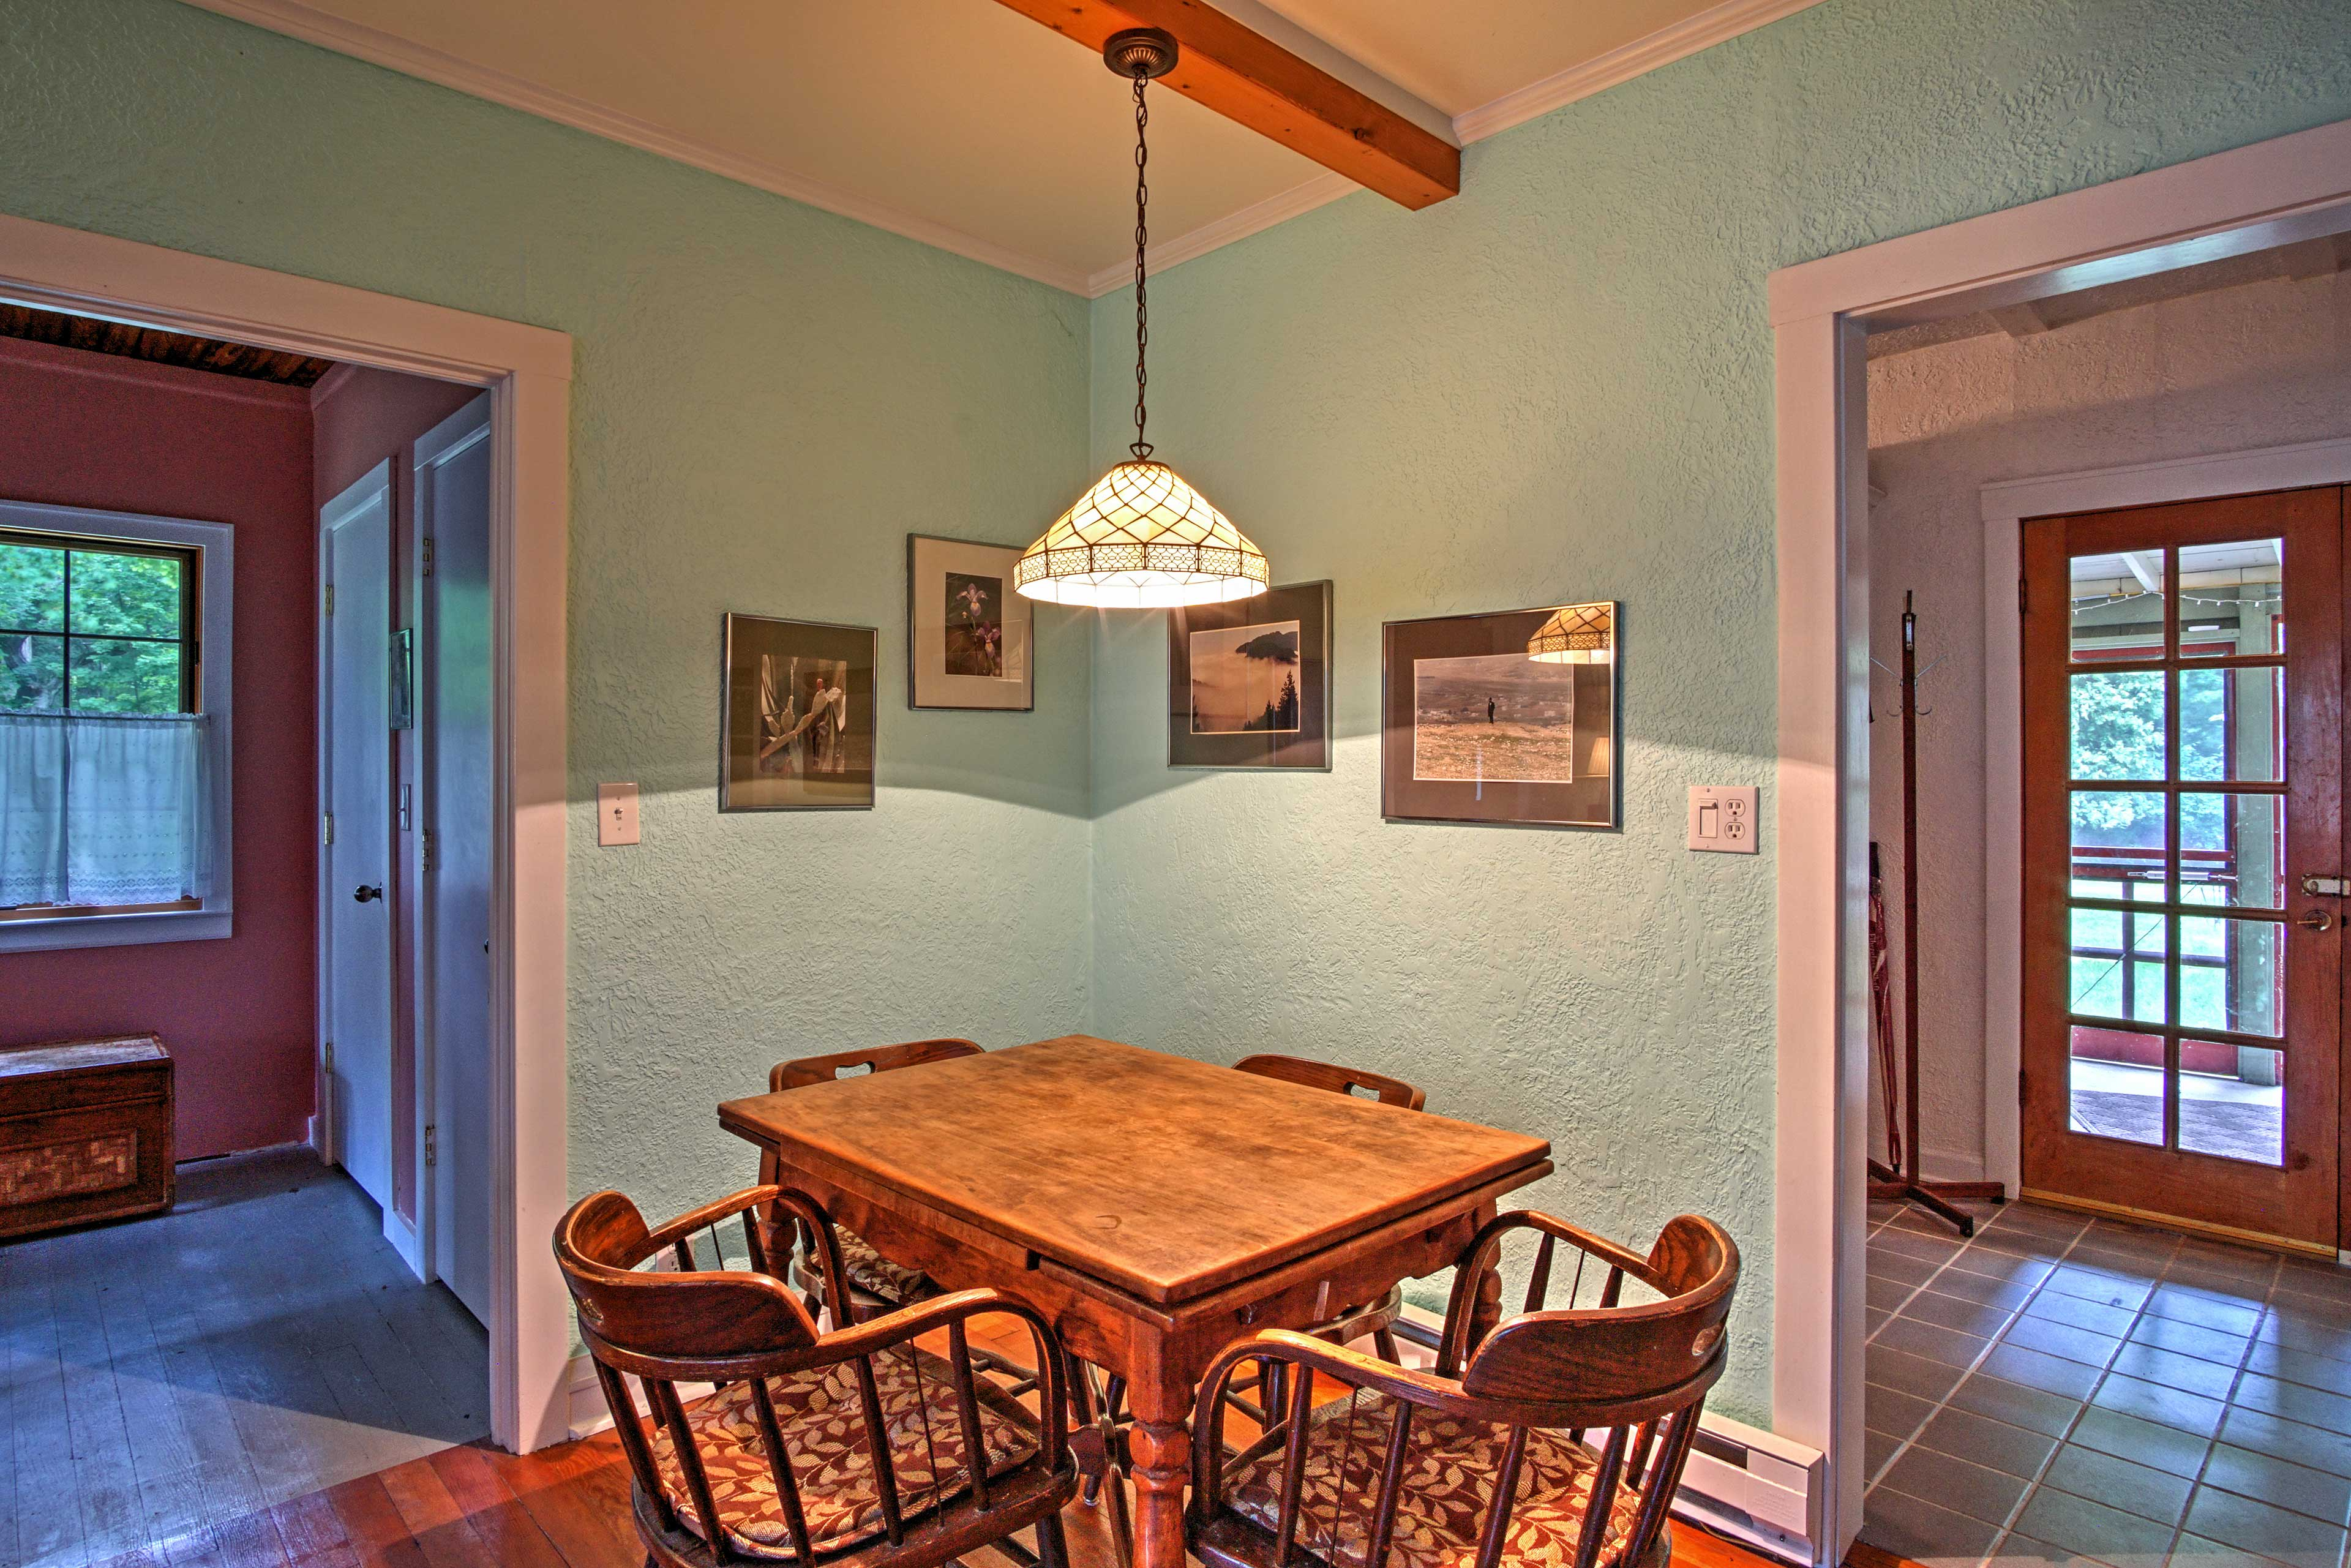 Gather around the dining table set for 4 and enjoy dinner.